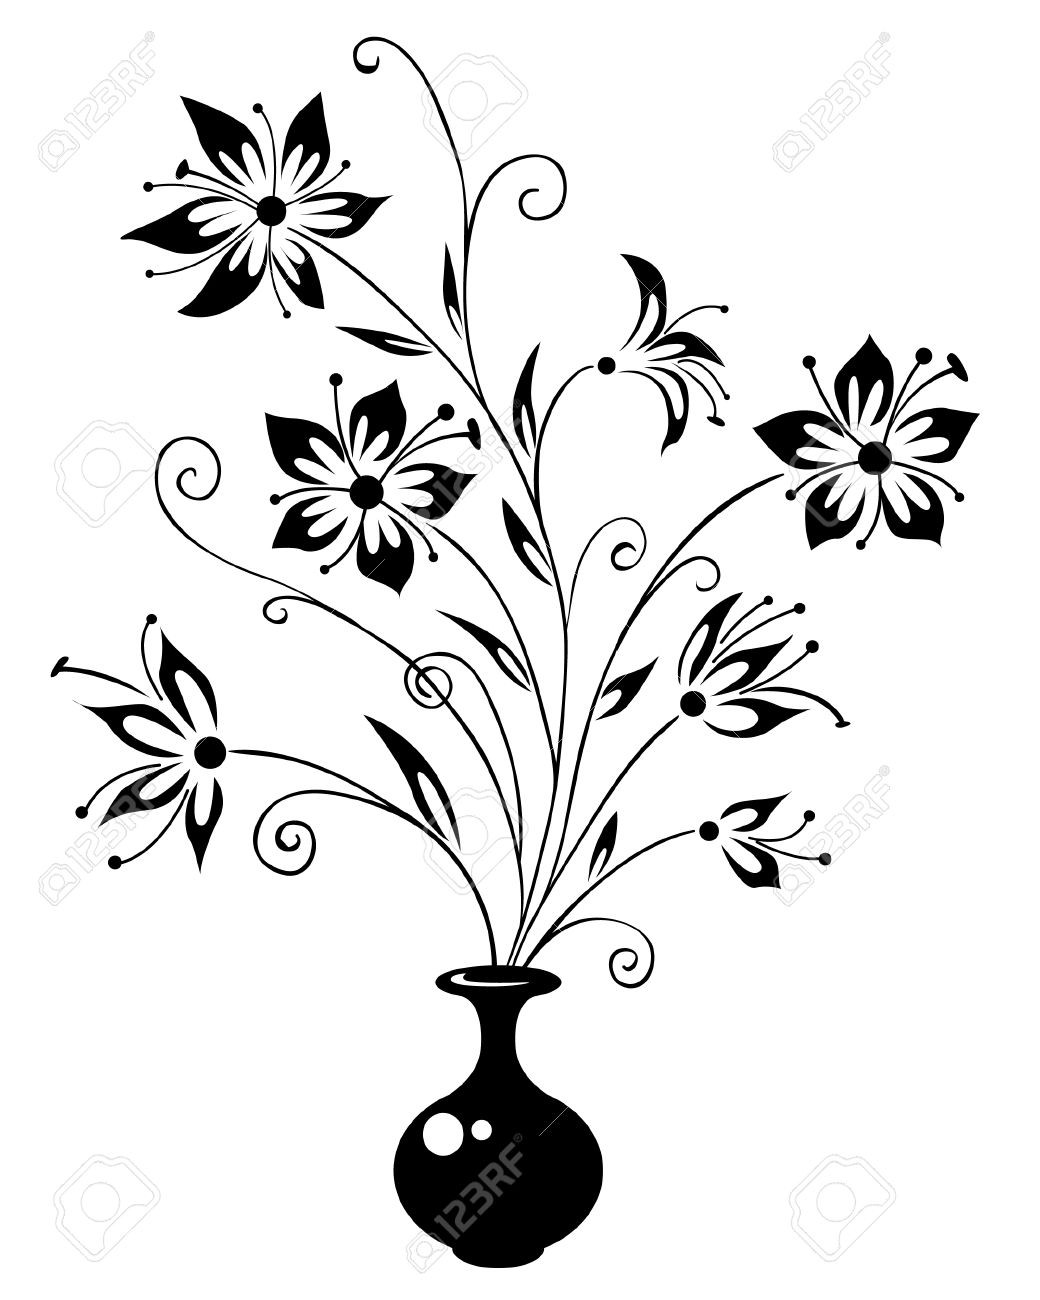 1040x1300 Flower Vase With Flowers Drawings For Kids How To Draw In A Vases